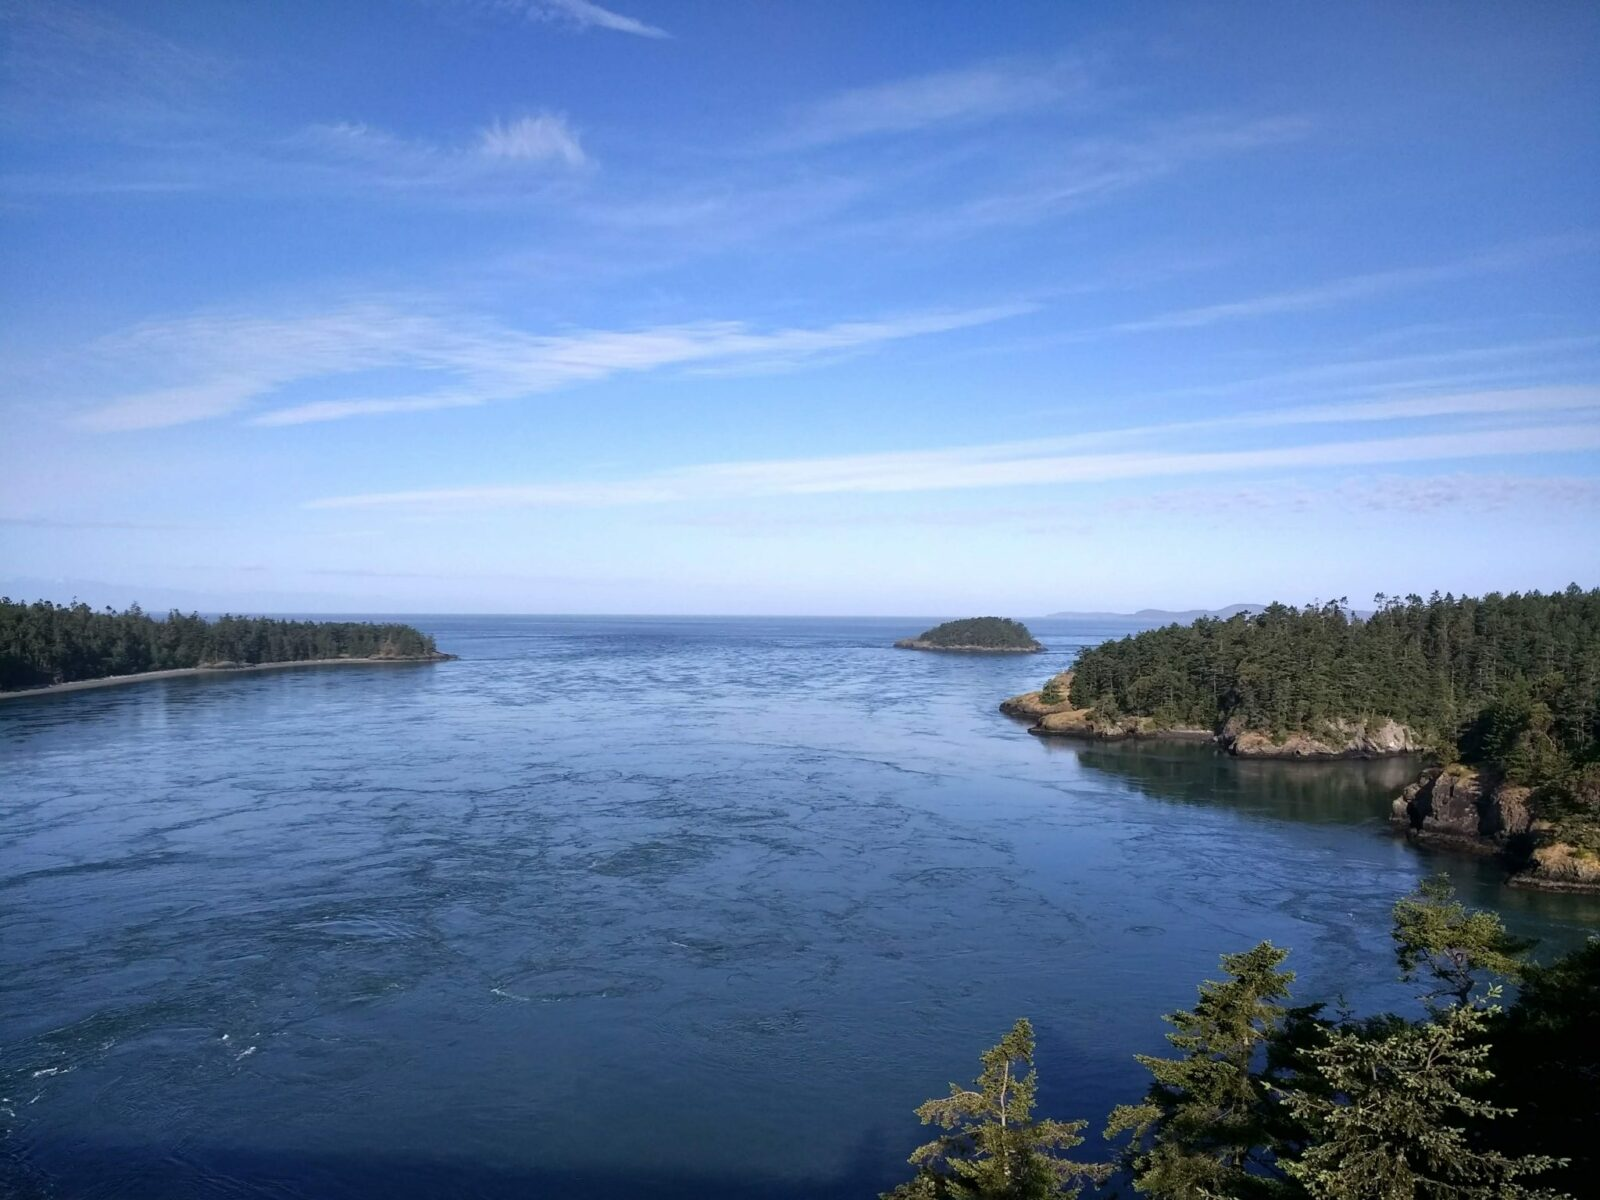 A view from a high bridge on a sunny day. There is churning water below and forested hillsides on both sides as well as islands in the distance